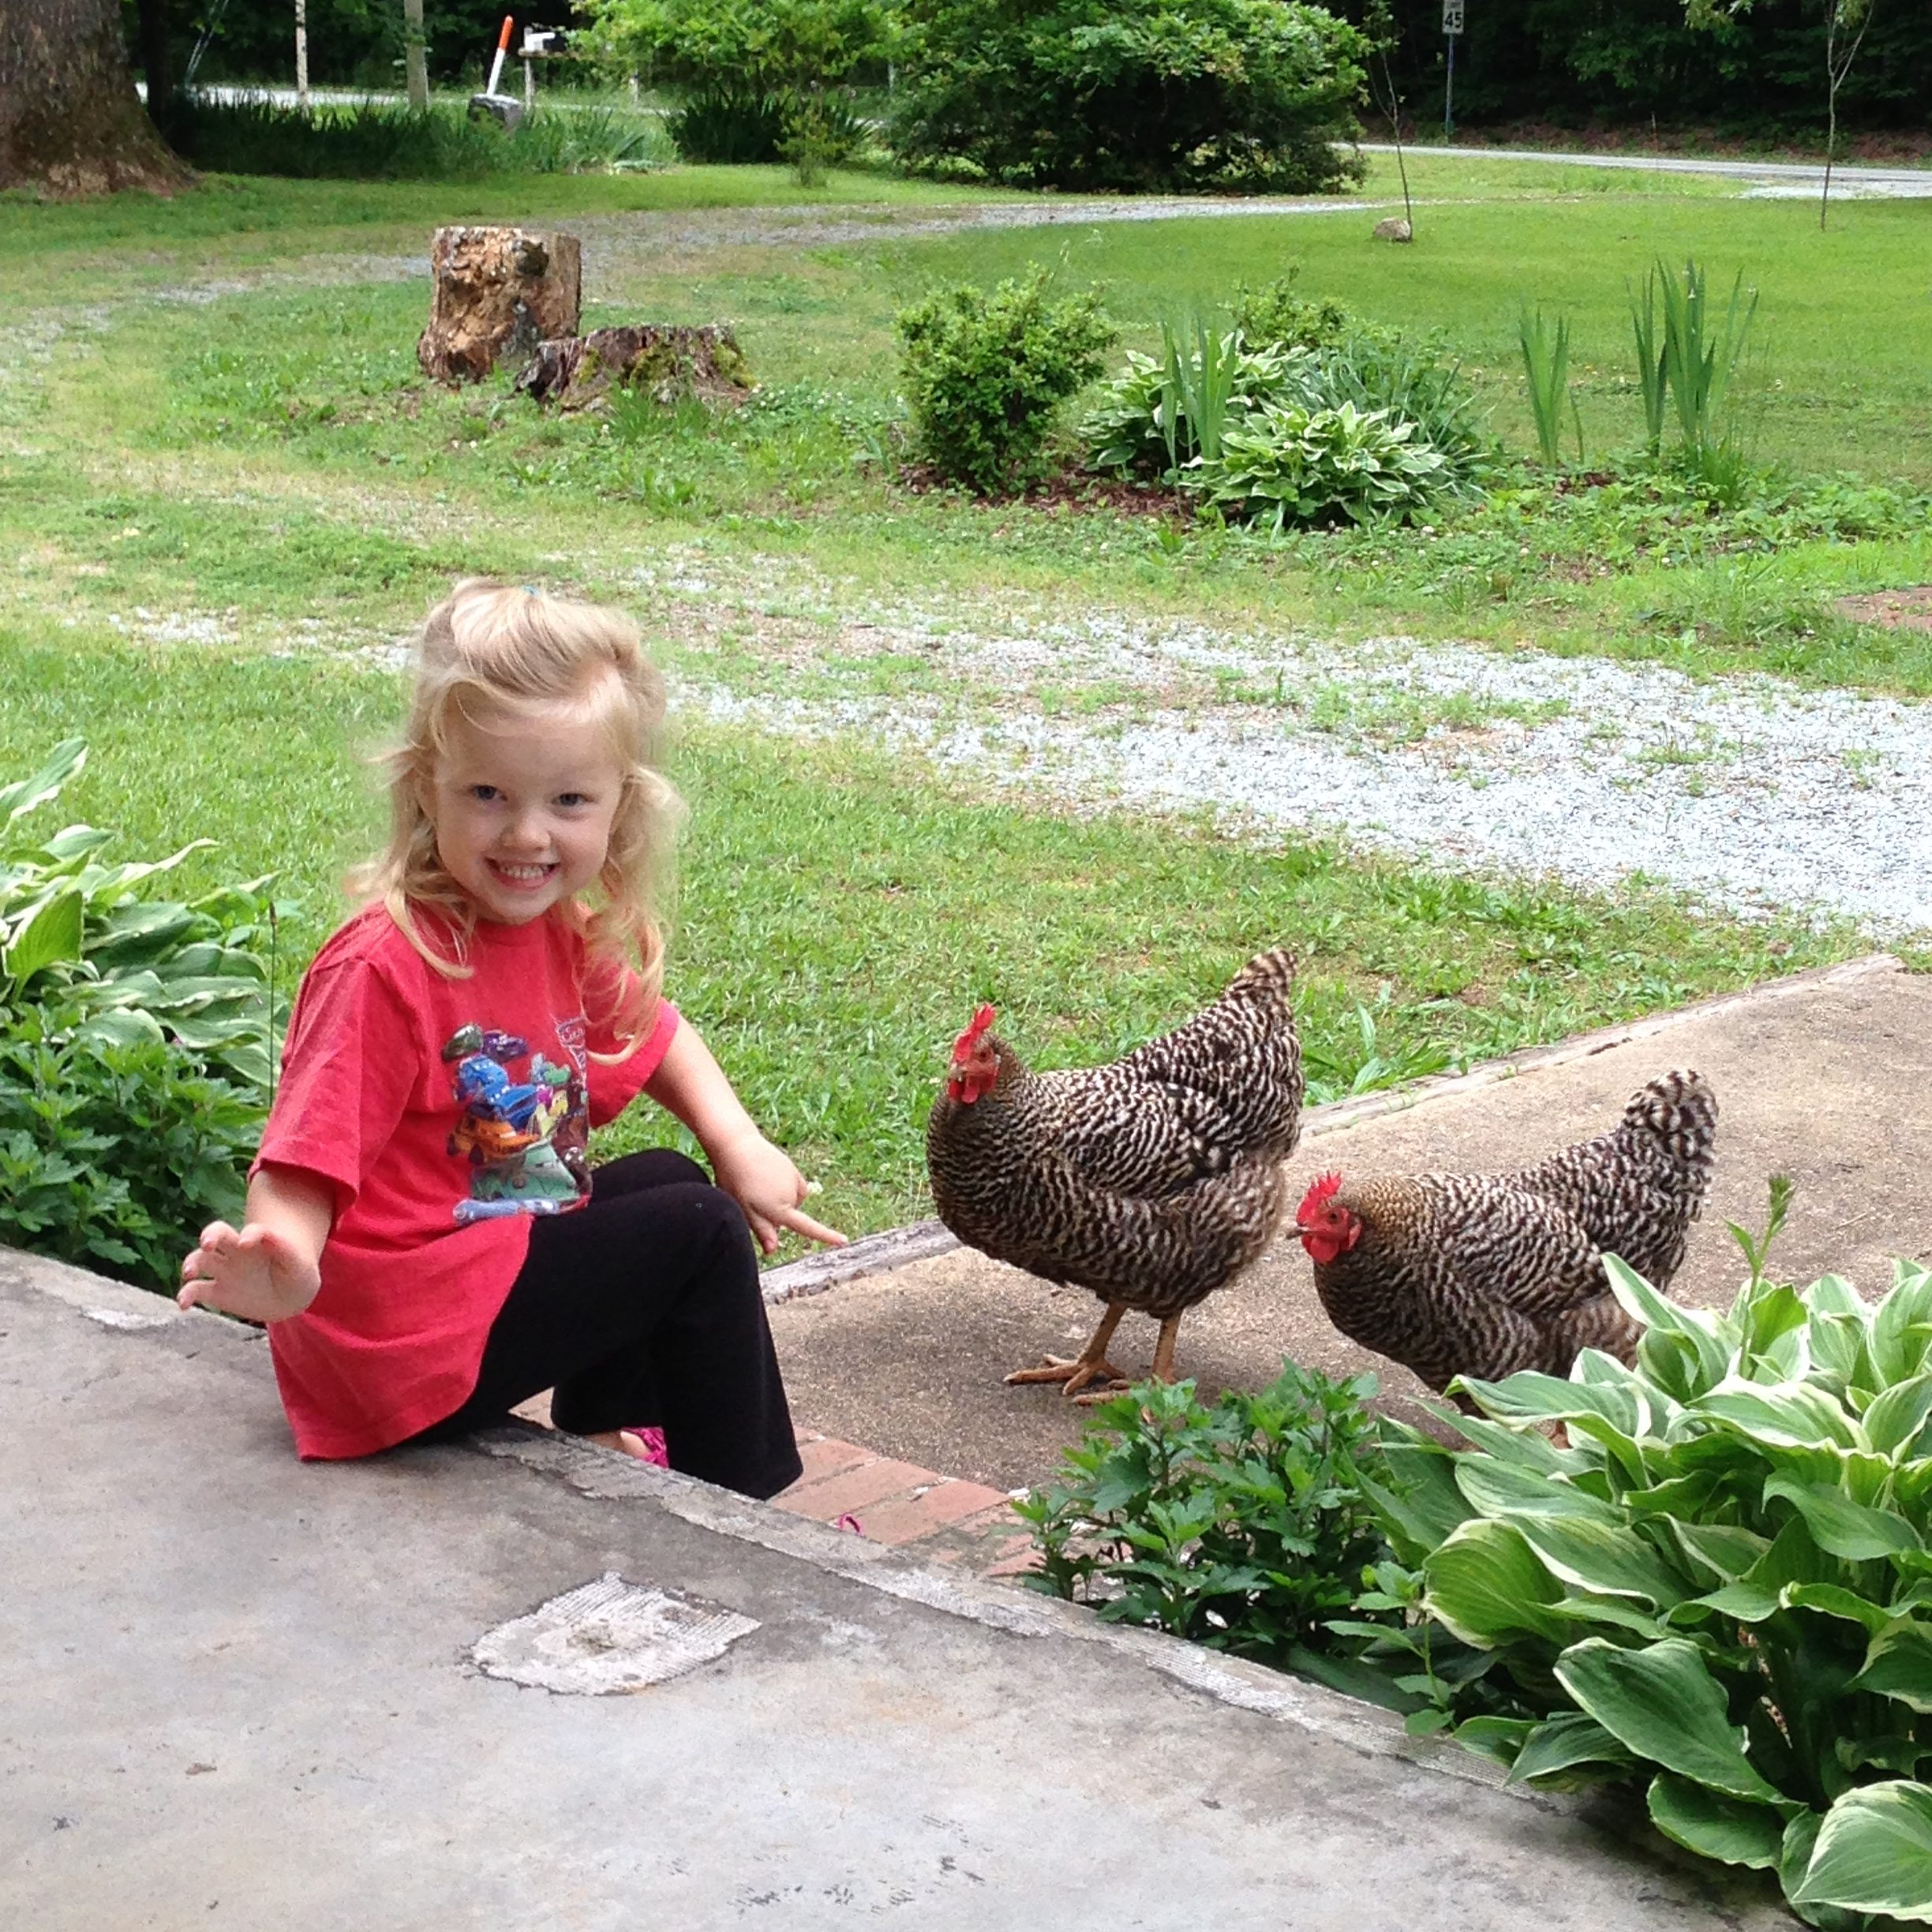 little girl sitting on porch with chickens on concrete walkway